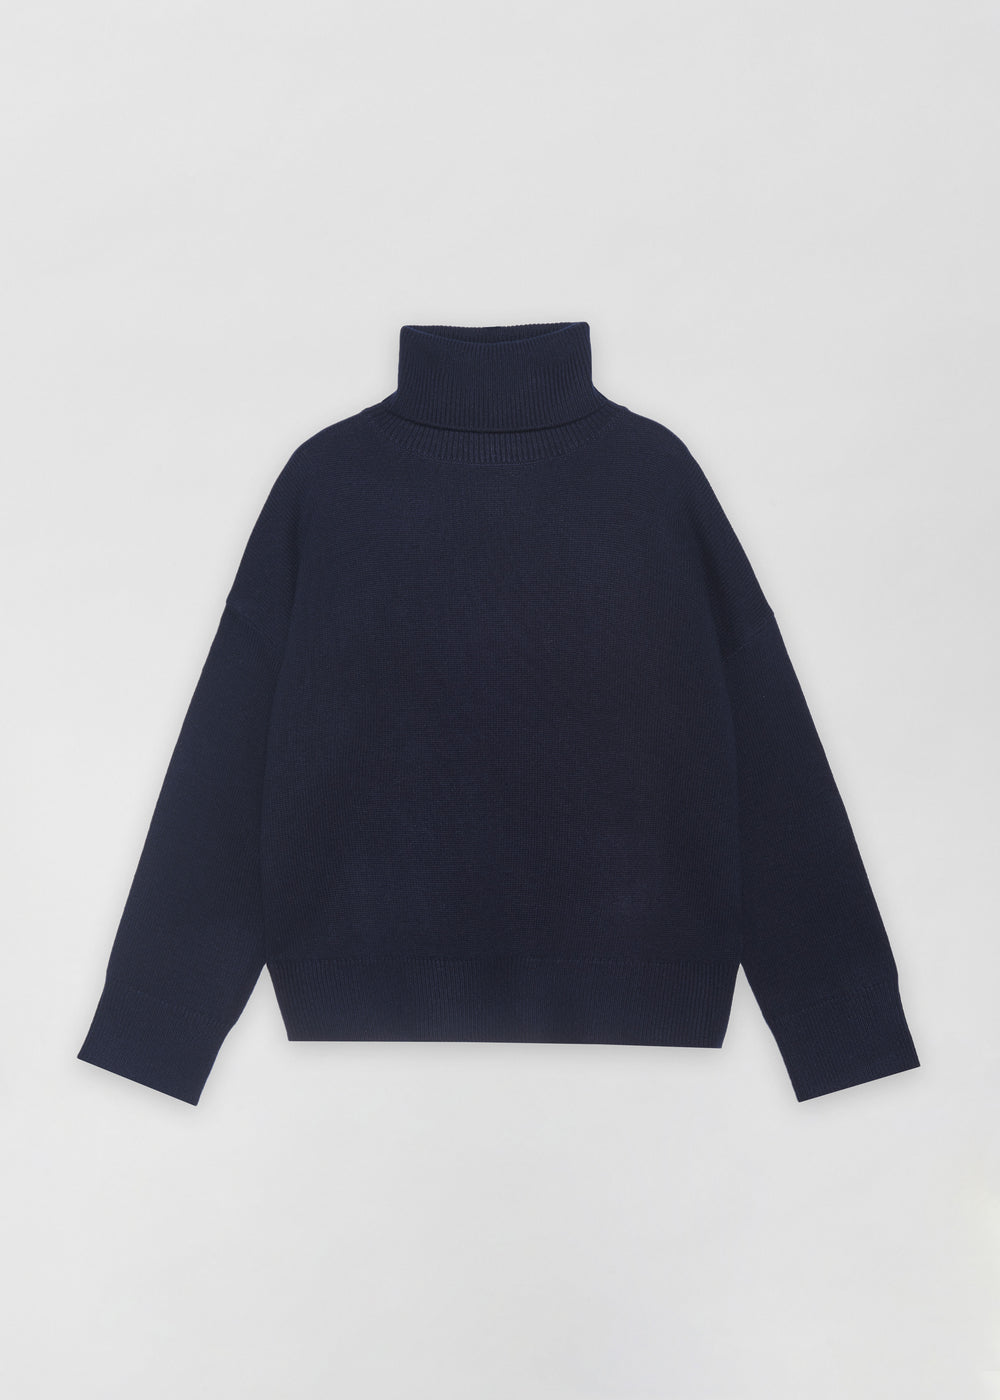 Boxy Turtleneck Sweater in Wool Cashmere - Brown in Navy by Co Collections